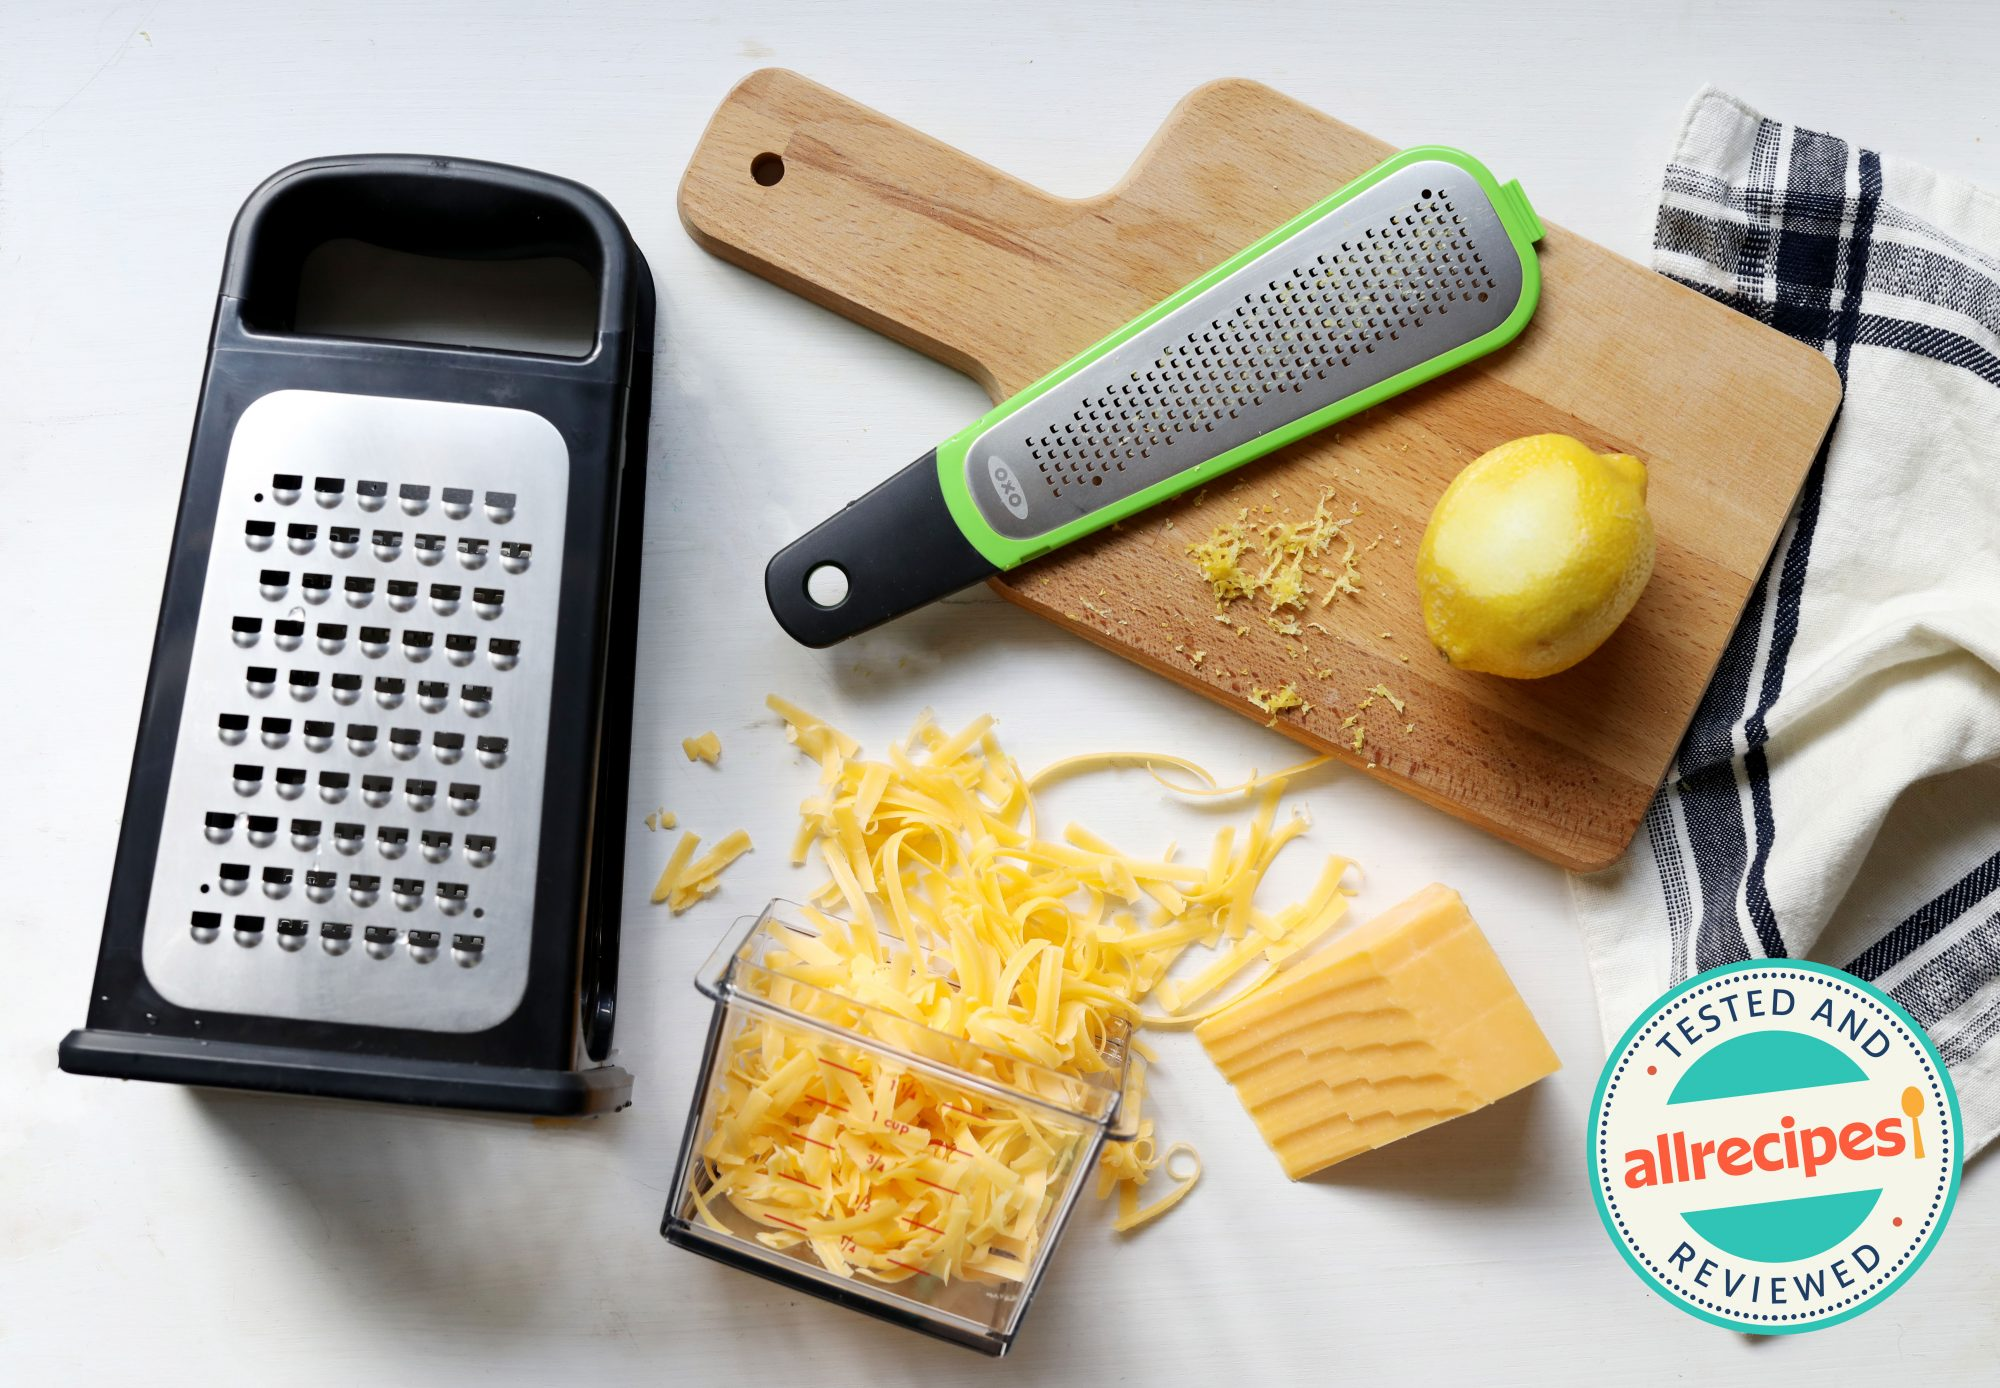 box graters, cheddar cheese, cutting board, dish towel, and zested lemon